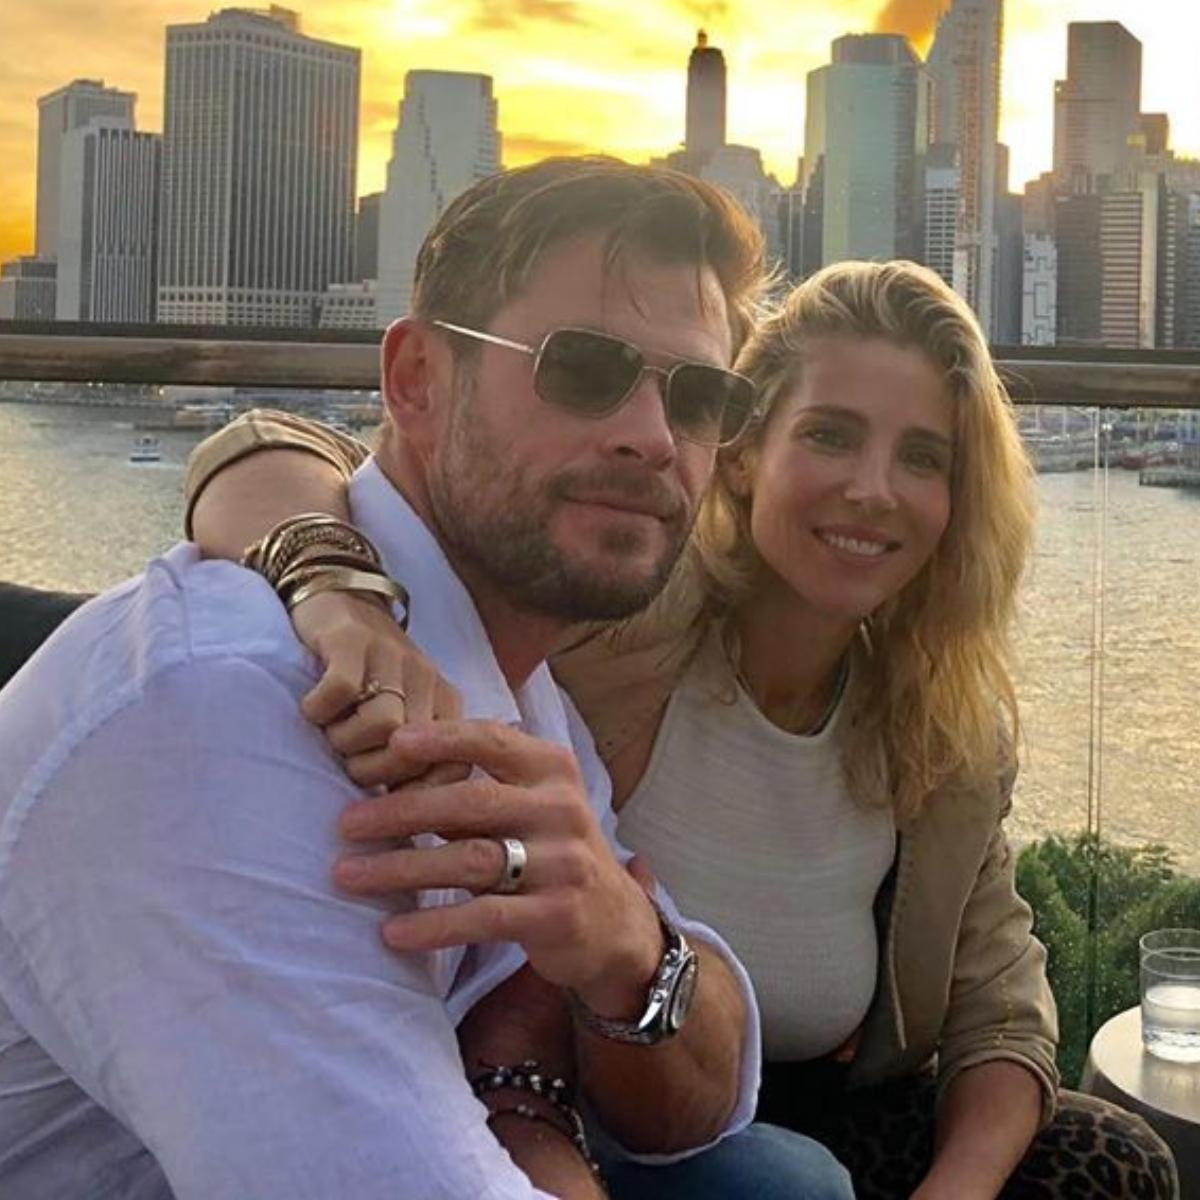 Extraction Star Chris Hemsworth And Elsa Pataky Married After Dating For 3 Months Check Out Their Love Story